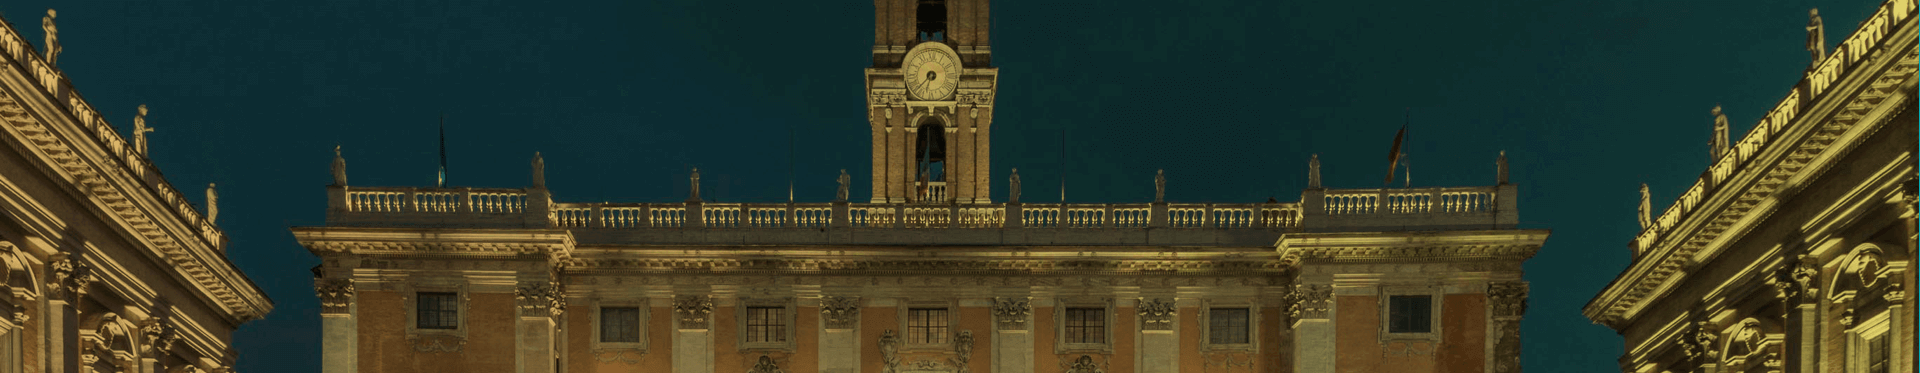 Acea LED lighting for the Capitoline Hill